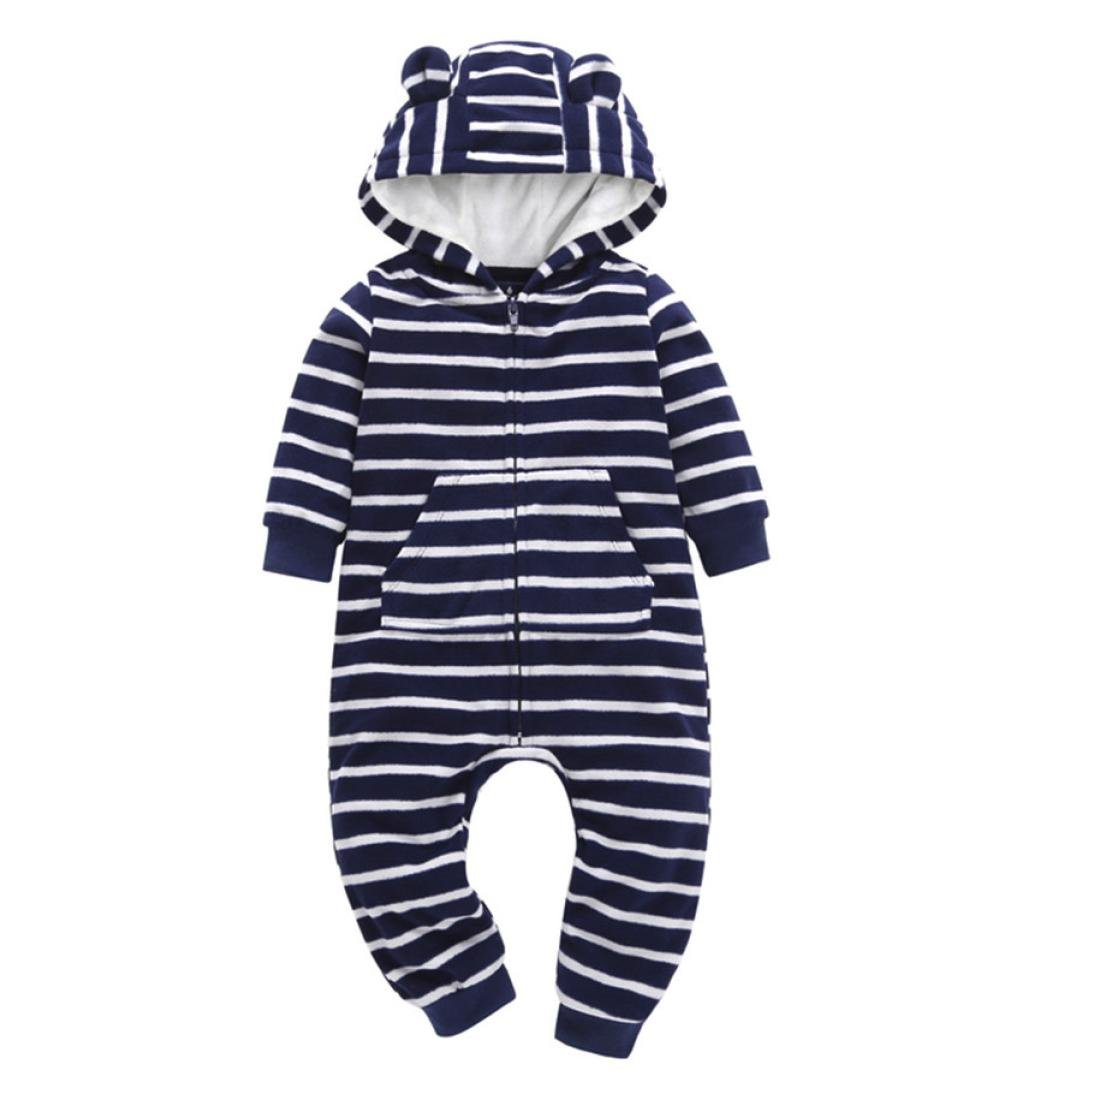 Baby Winter Warm Jumpsuit,Jchen(TM) Infant Baby Boys Girls Thicker Striped Hooded Romper Jumpsuit for 0-24 Months (Age: 0-6 Months)